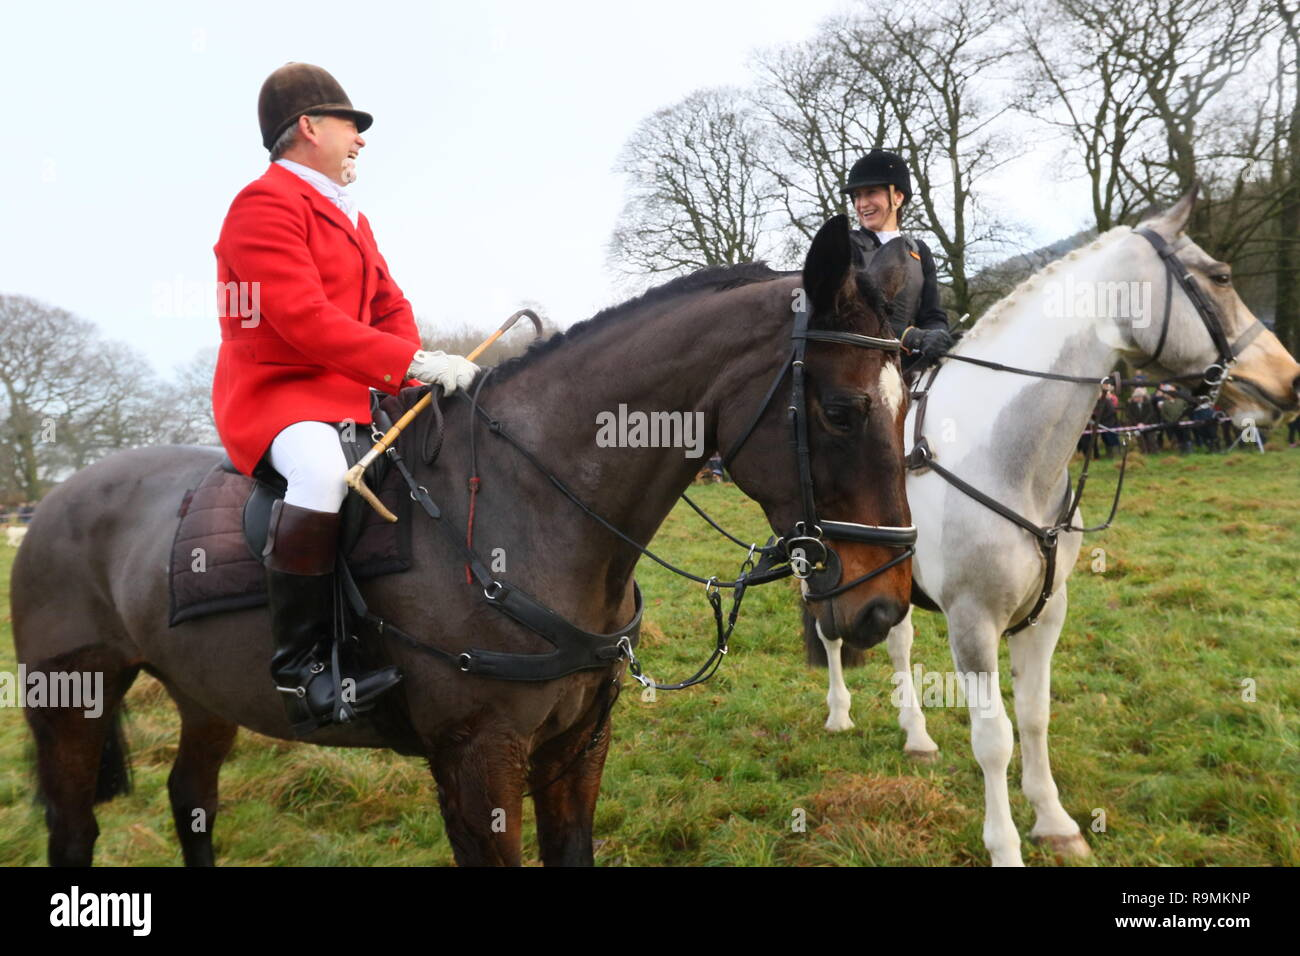 Holcombe Hunt Stock Photos & Holcombe Hunt Stock Images - Alamy